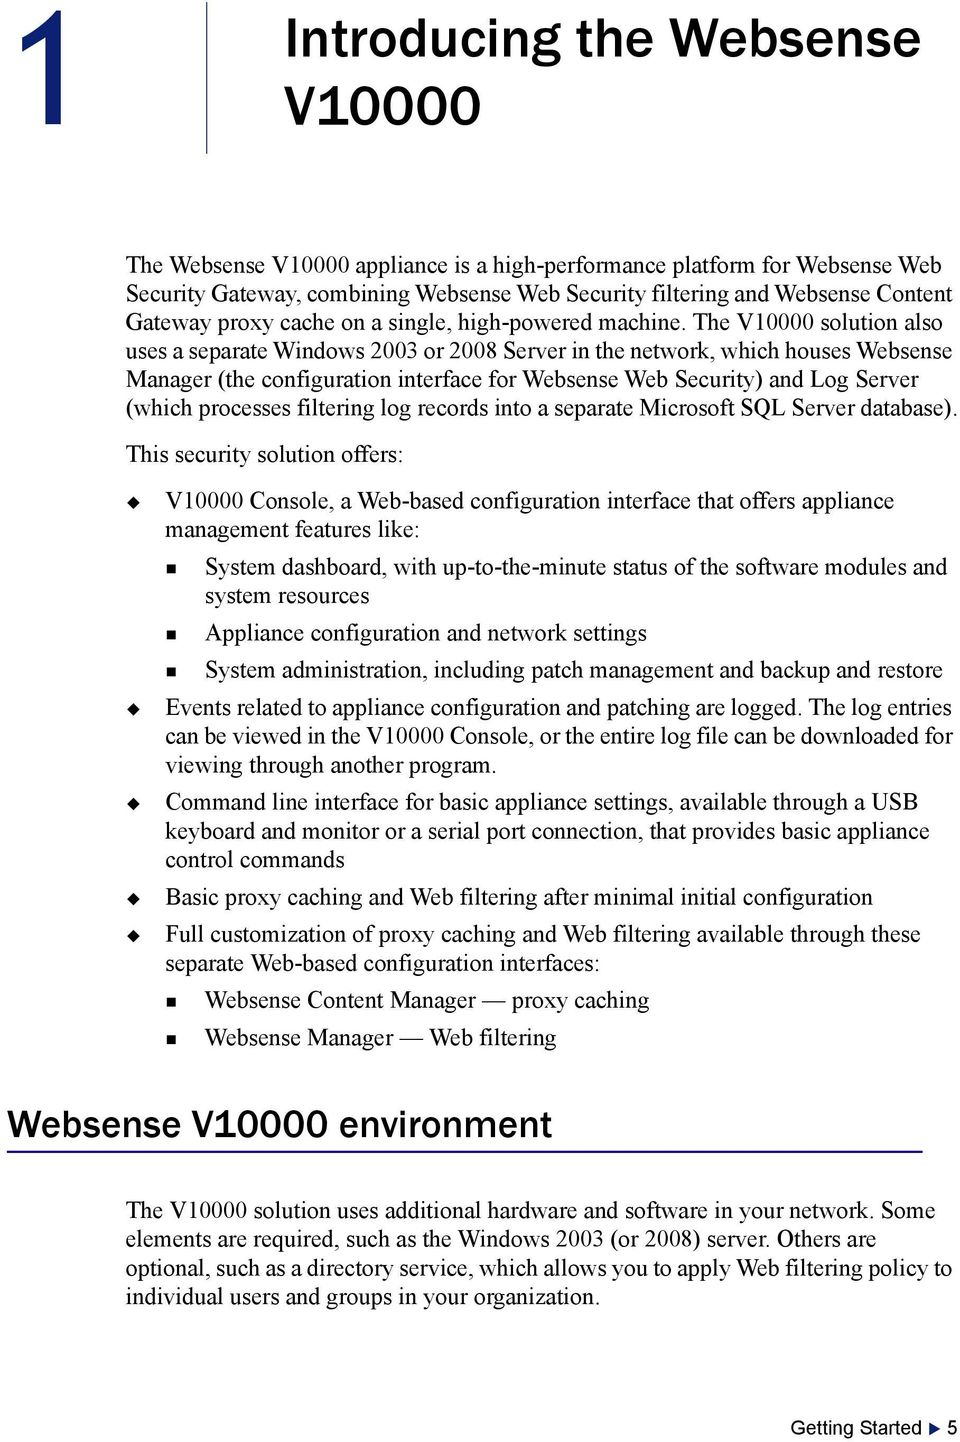 The V10000 solution also uses a separate Windows 2003 or 2008 Server in the network, which houses Websense Manager (the configuration interface for Websense Web Security) and Log Server (which